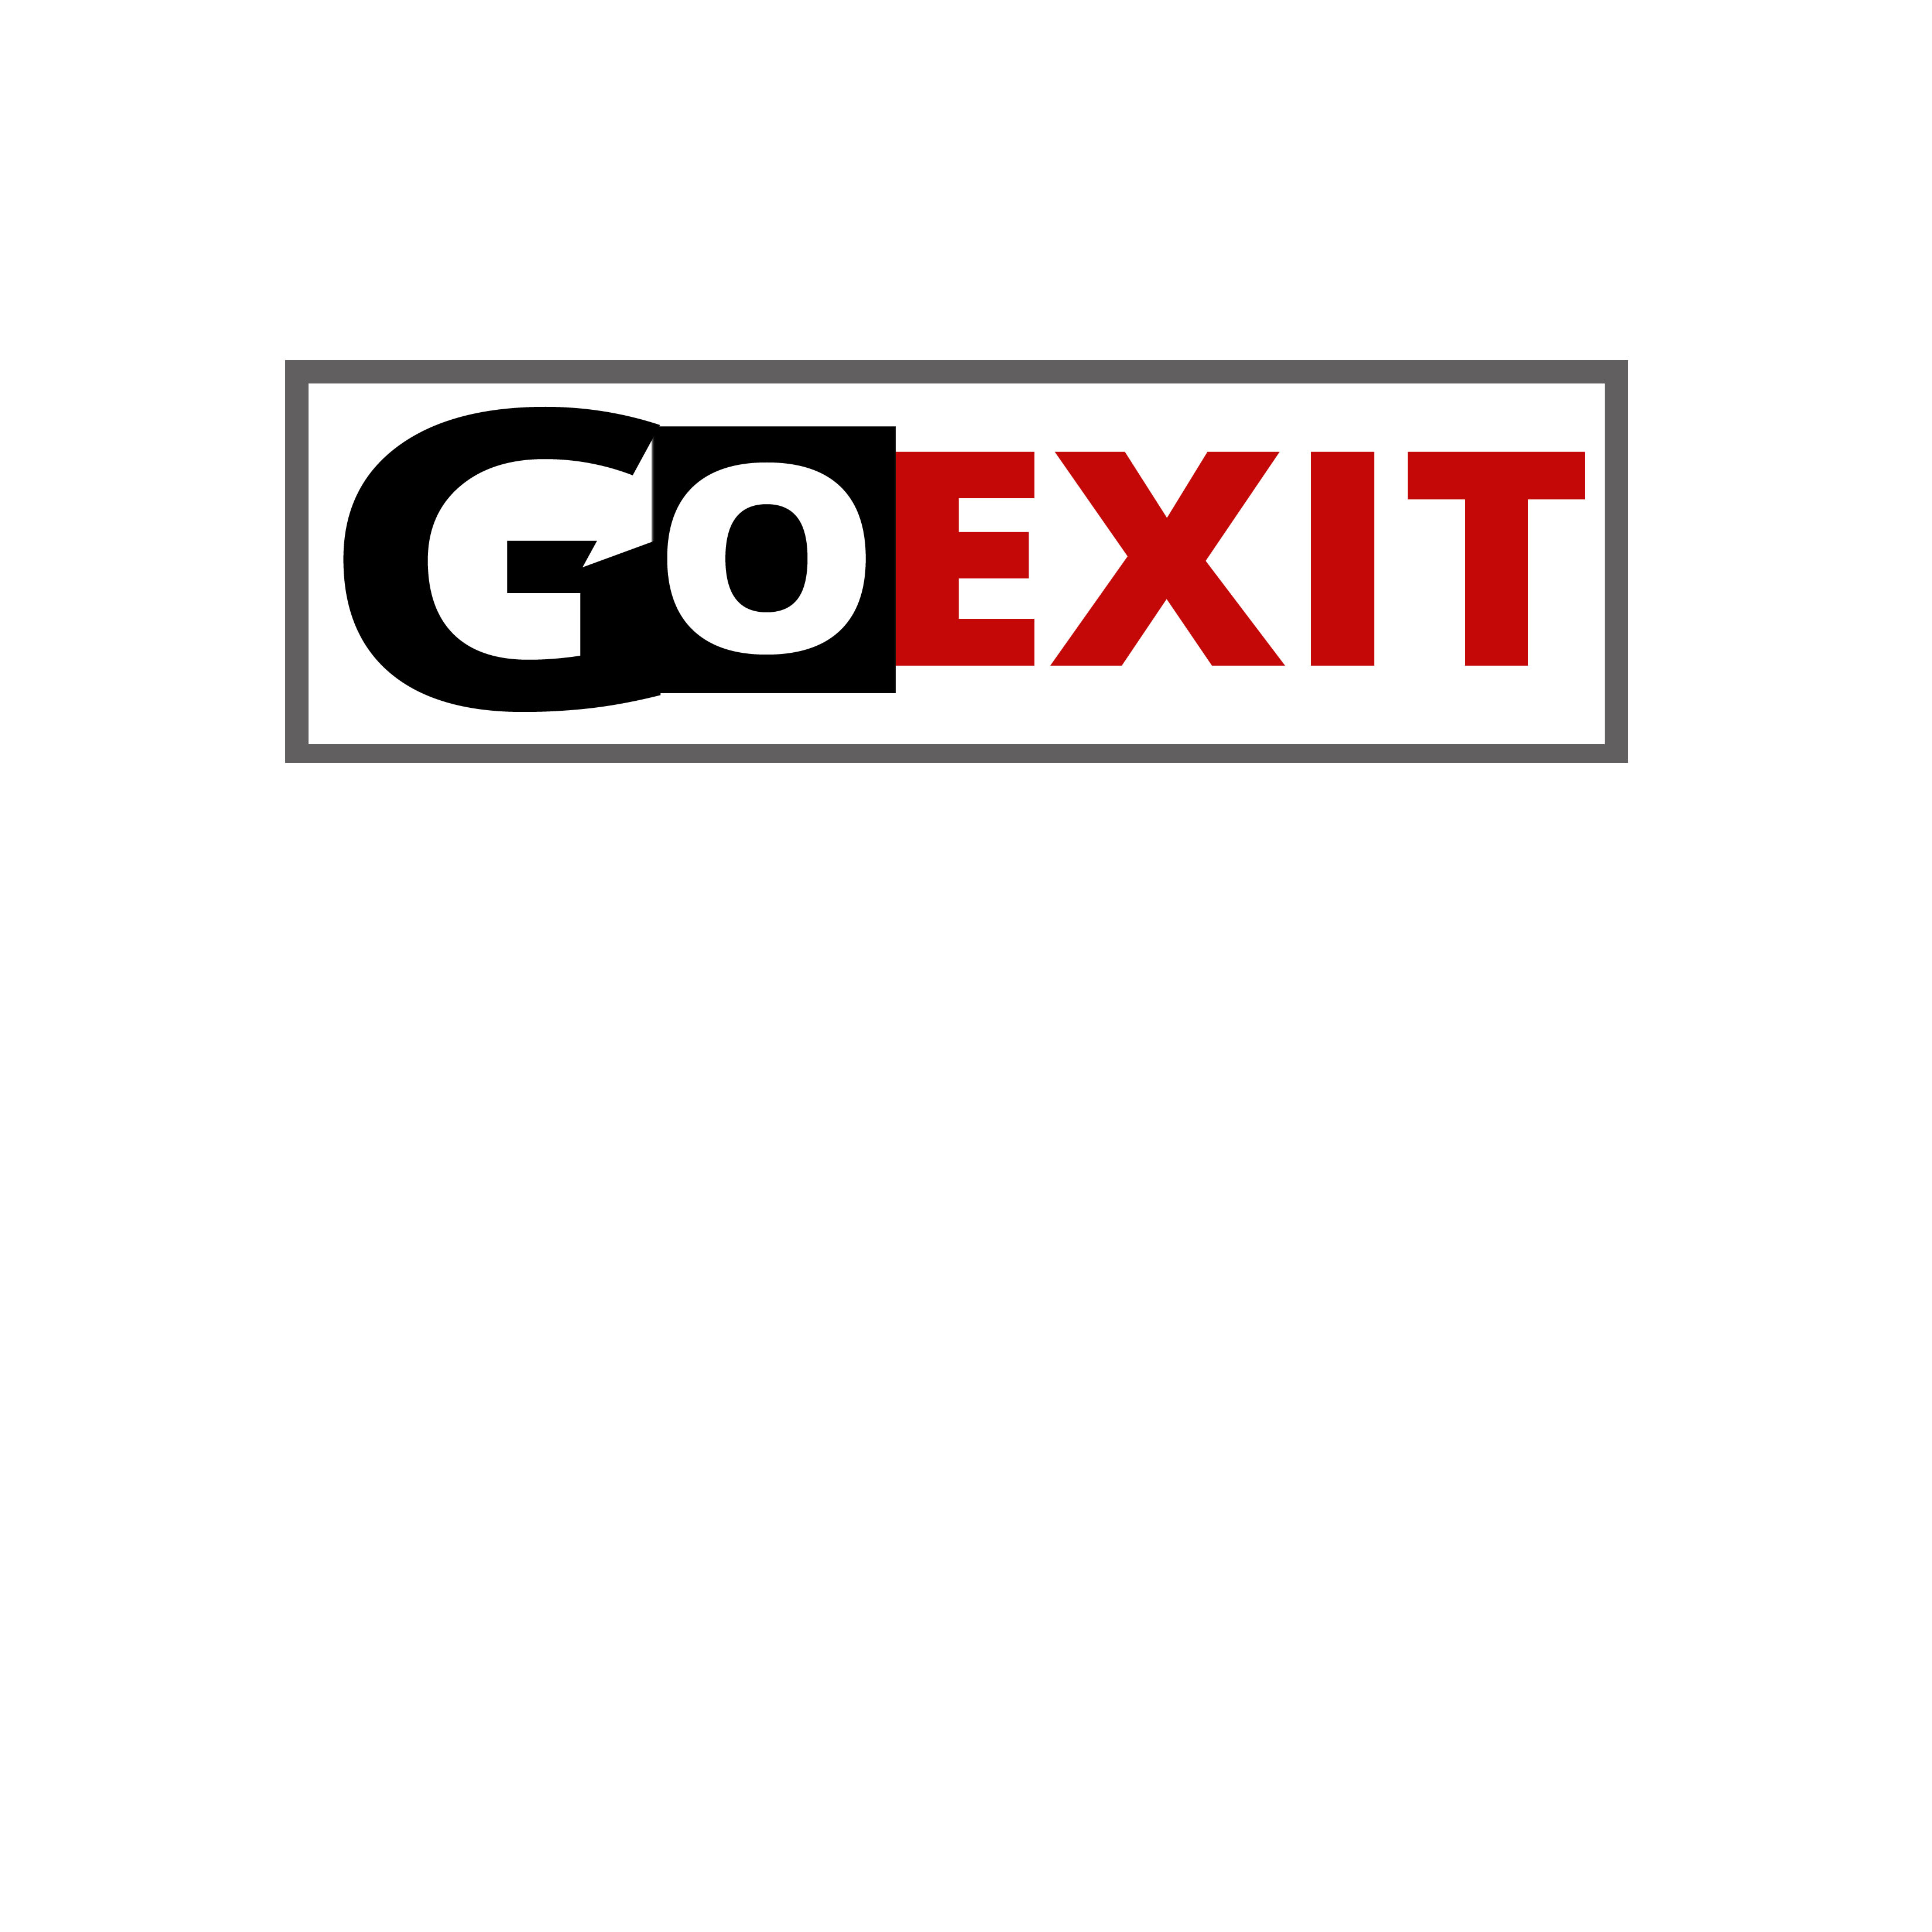 Logo Design by Allan Esclamado - Entry No. 126 in the Logo Design Contest GoExit Logo Design.